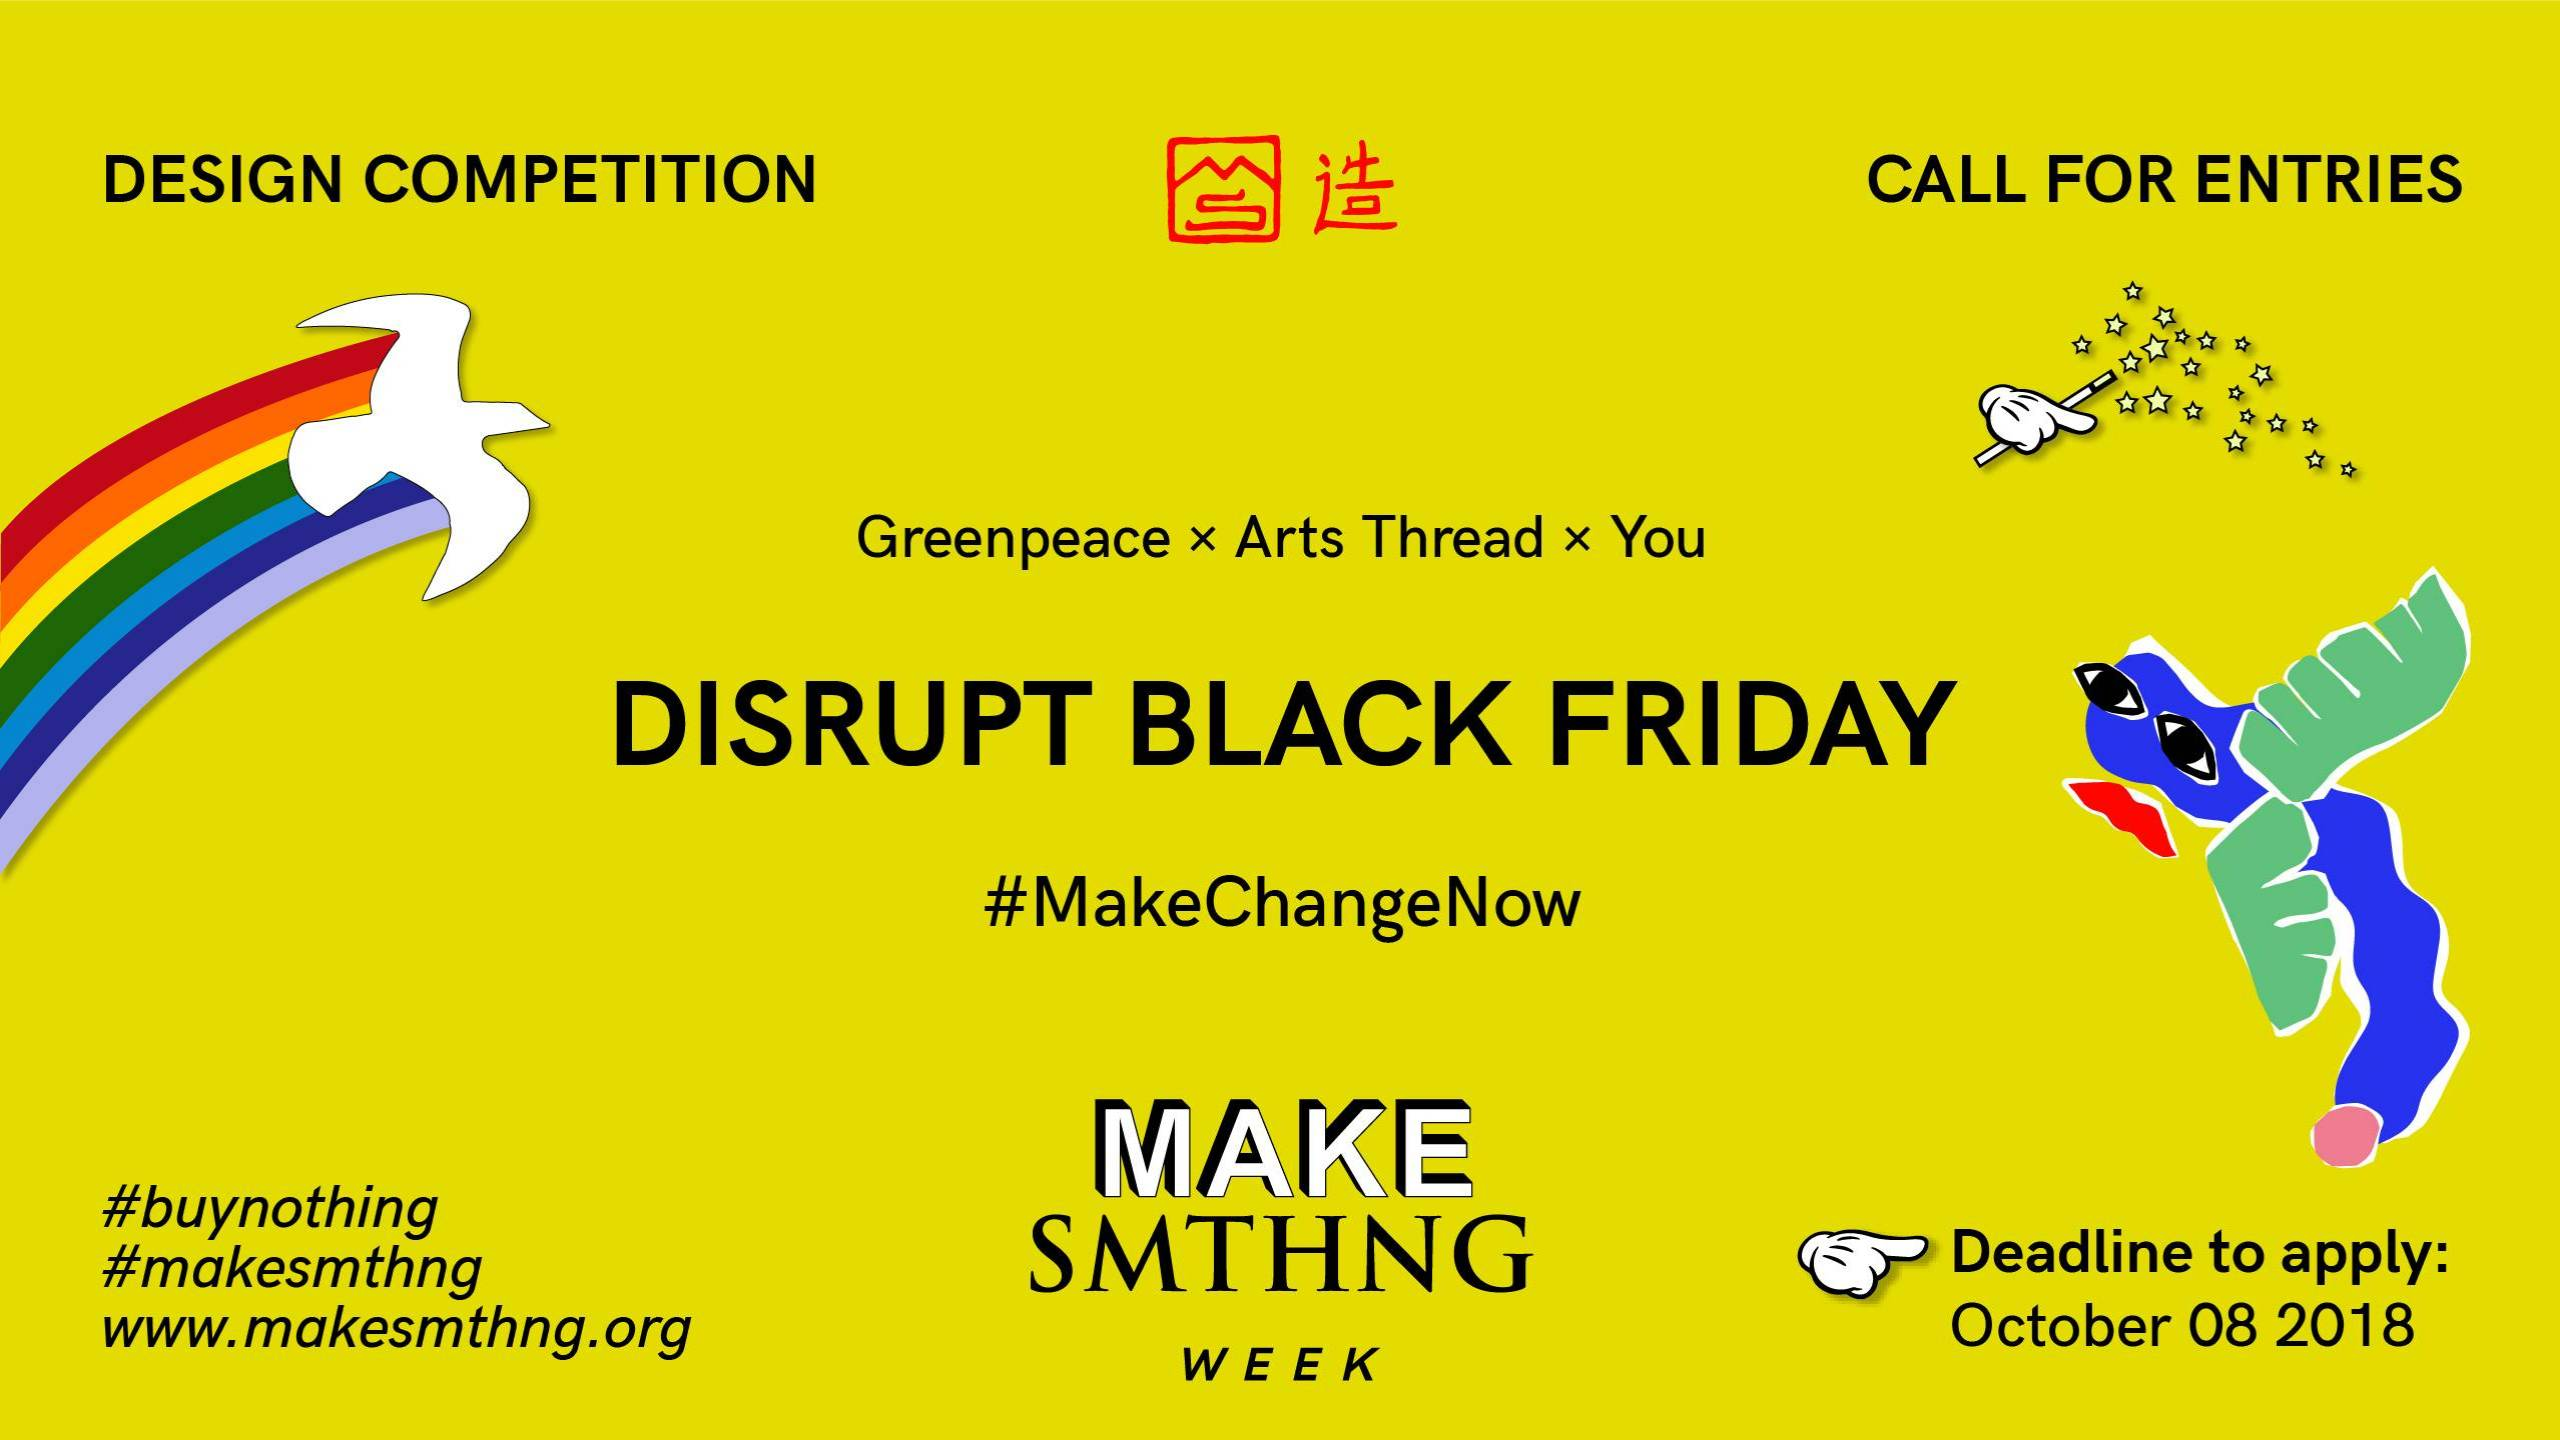 bfe7cdb56e Greenpeace × Arts Thread Competition  Disrupt Black Friday  MakeChangeNow